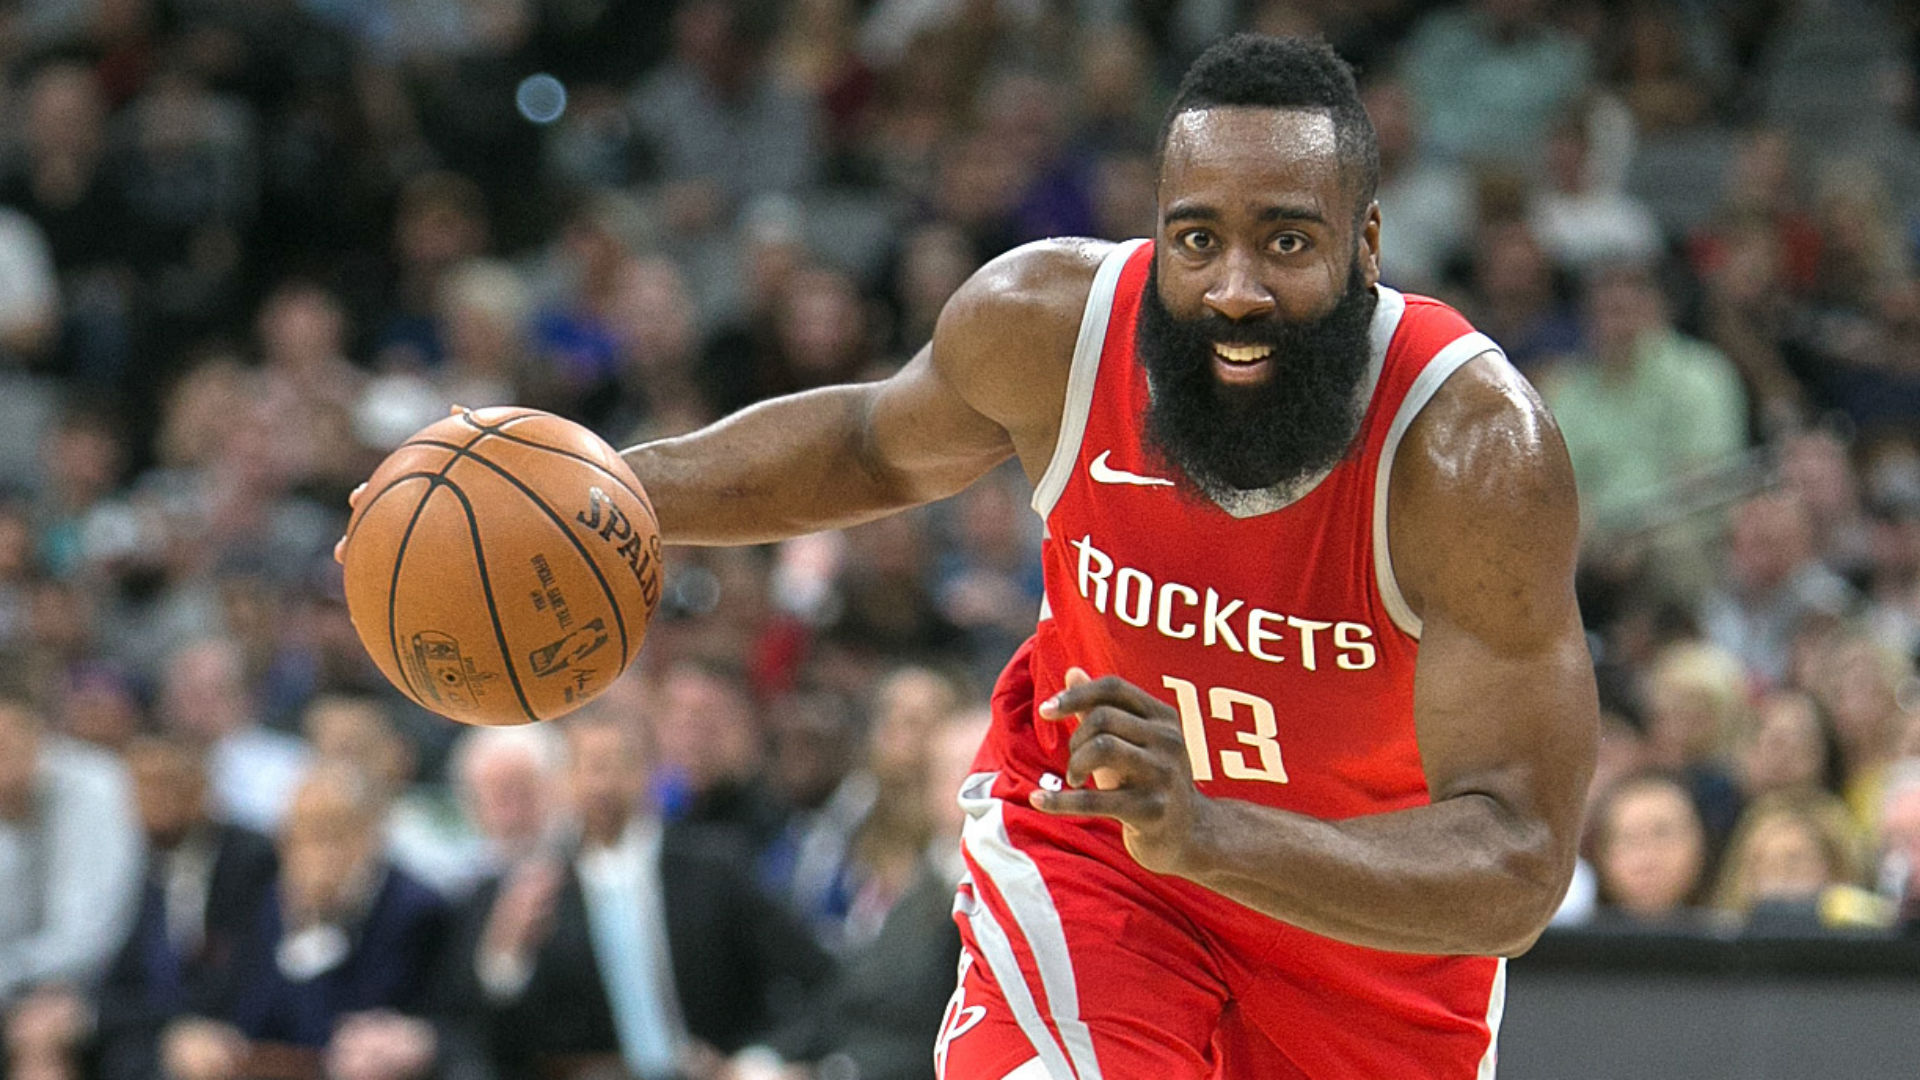 NBA awards 2018 James Harden wins first career MVP award 1920x1080